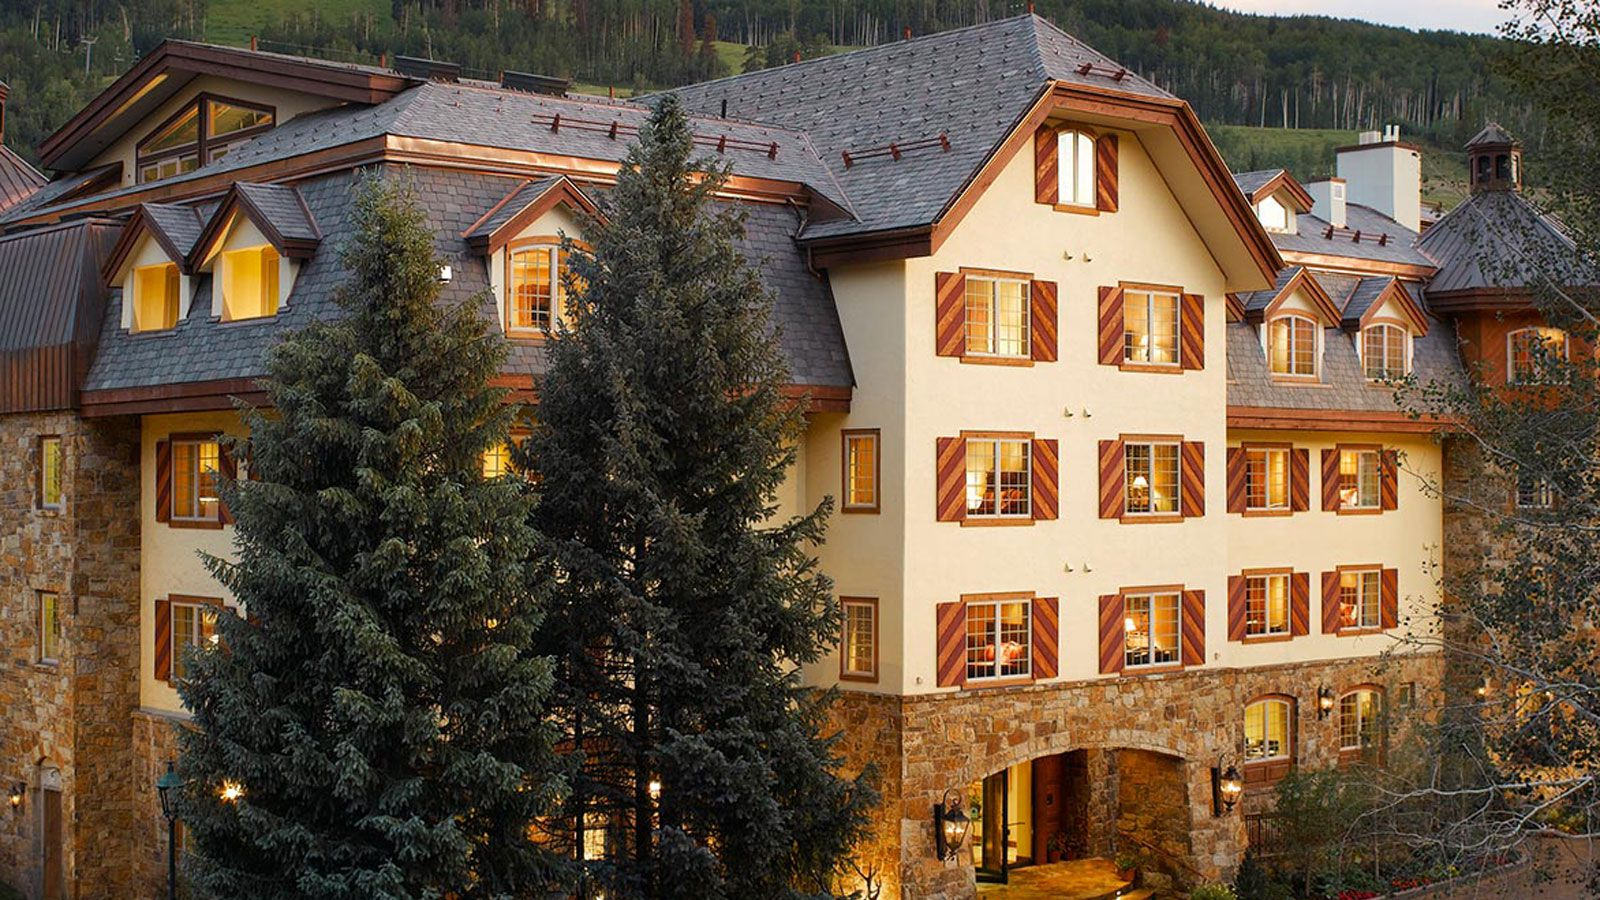 Vail S New Look Travel Leisure